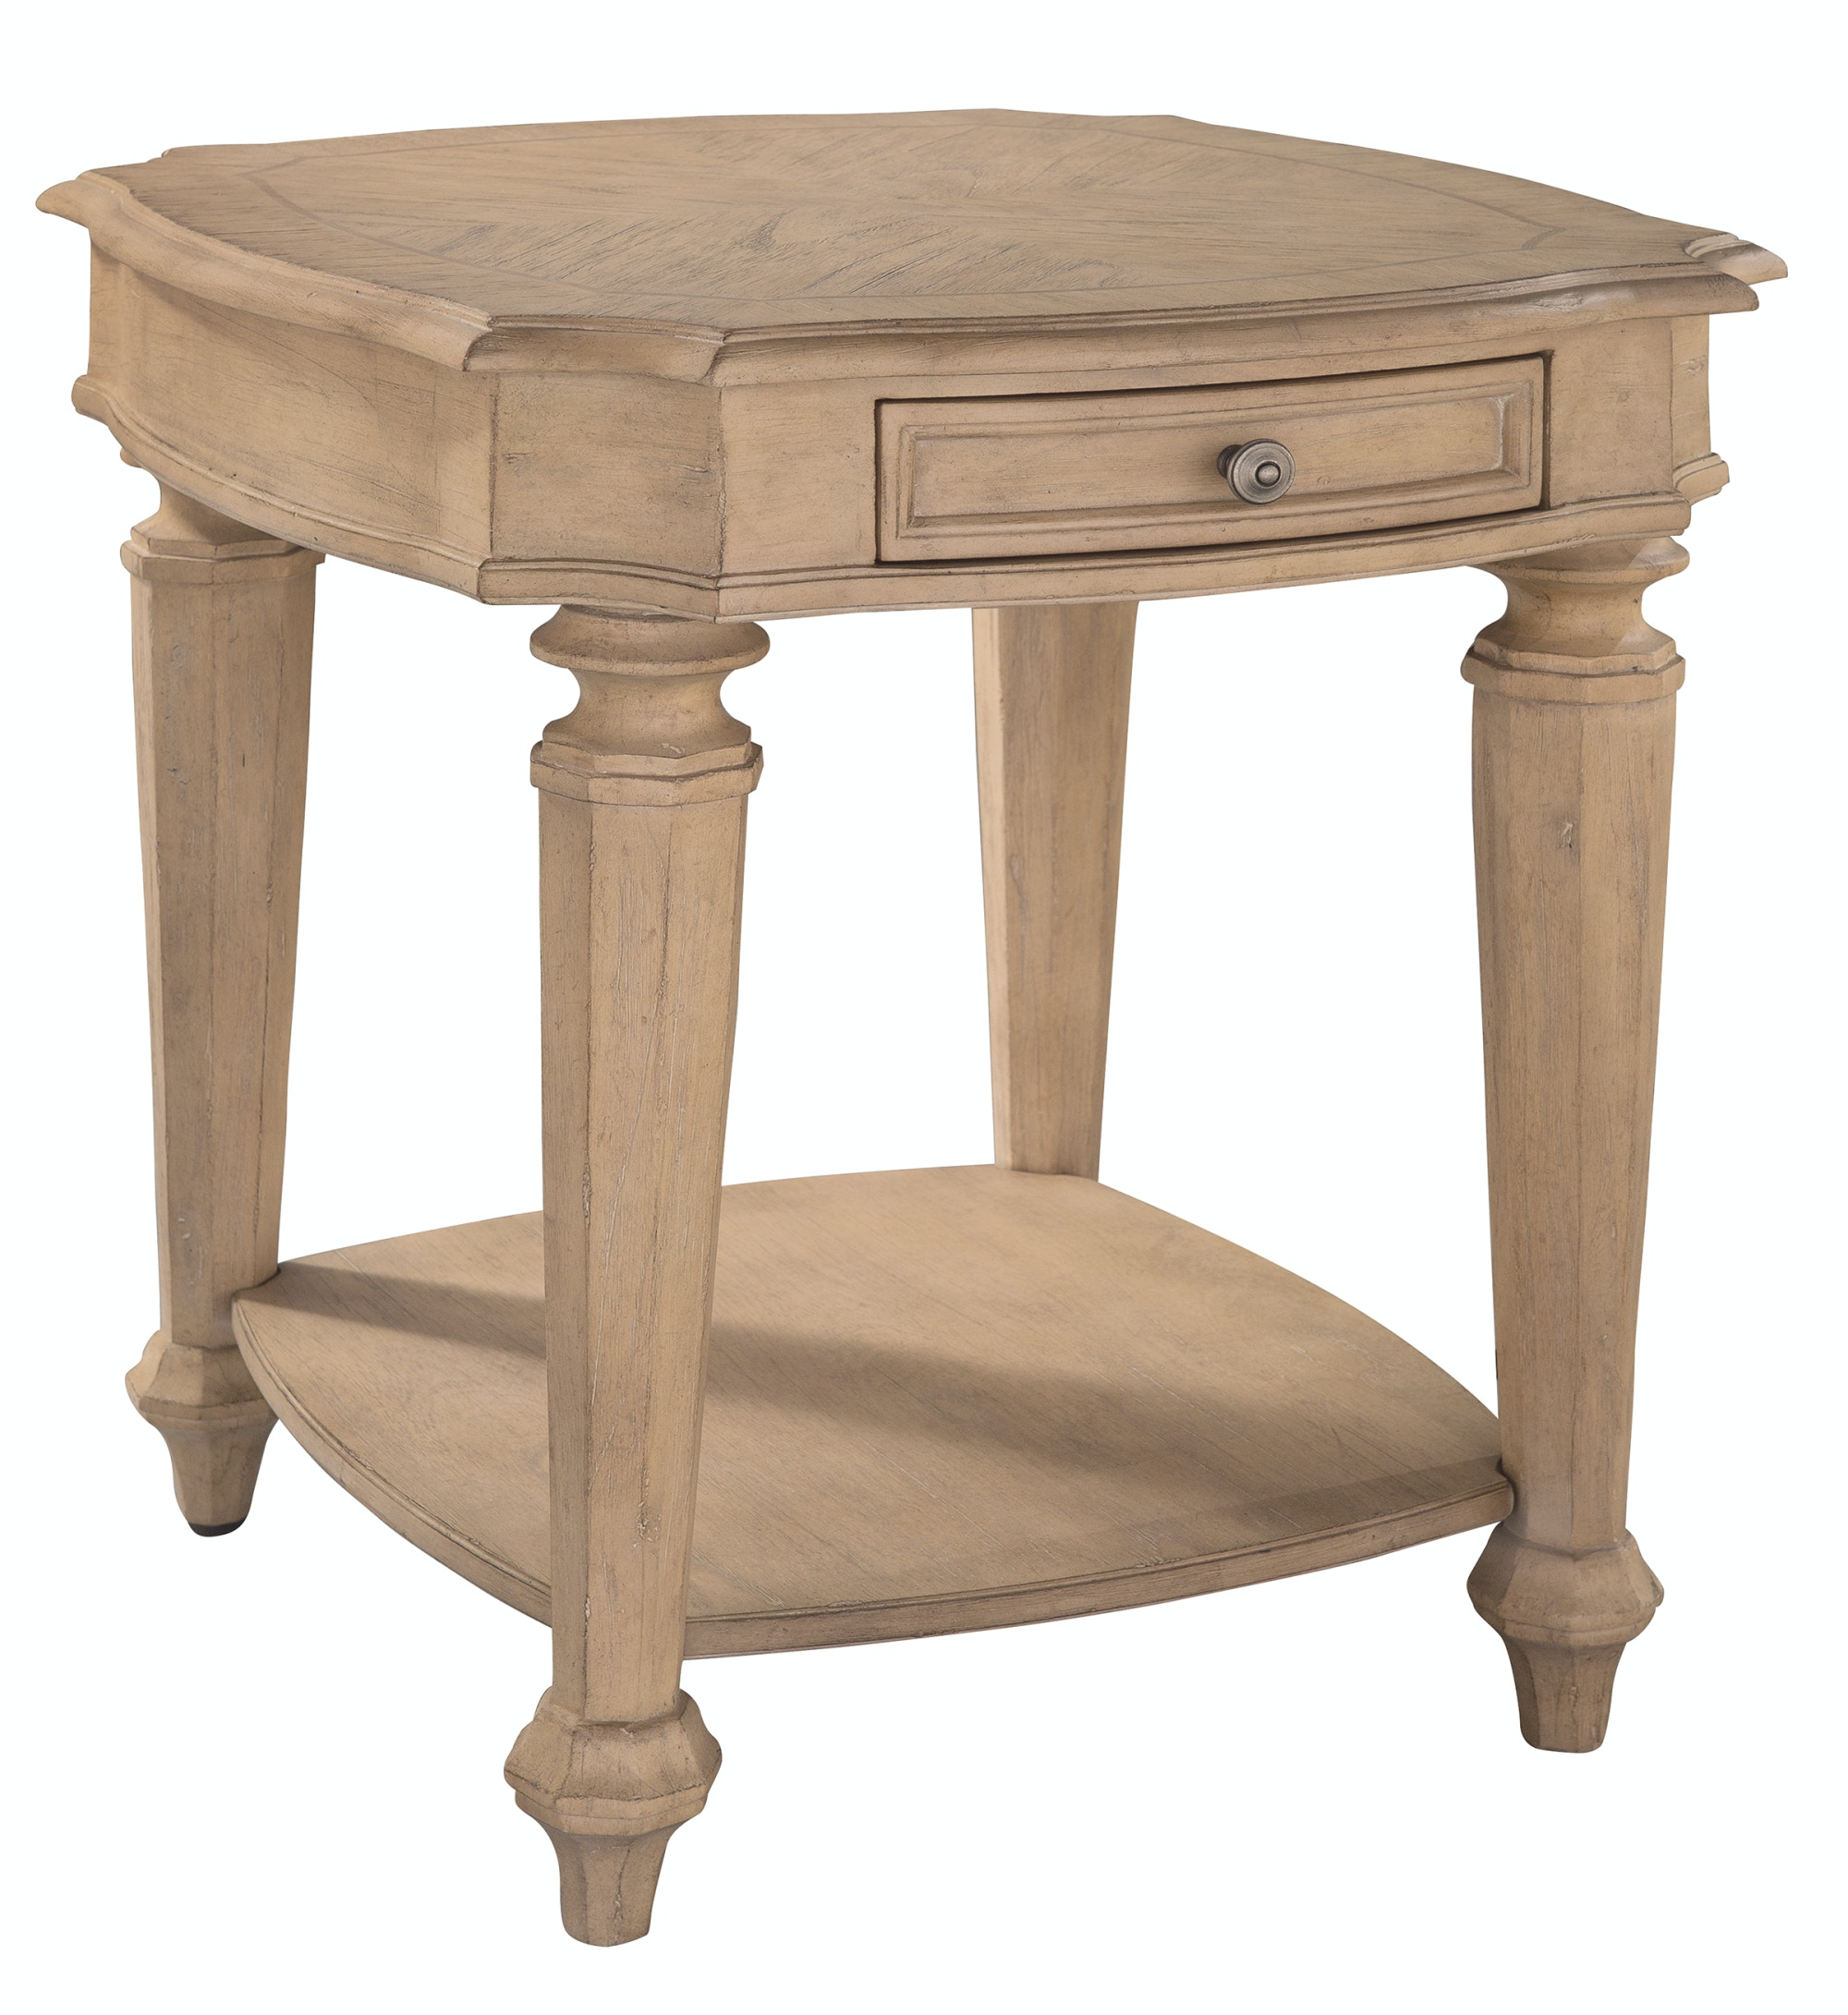 hekman furniture hekman accents rectangular end table